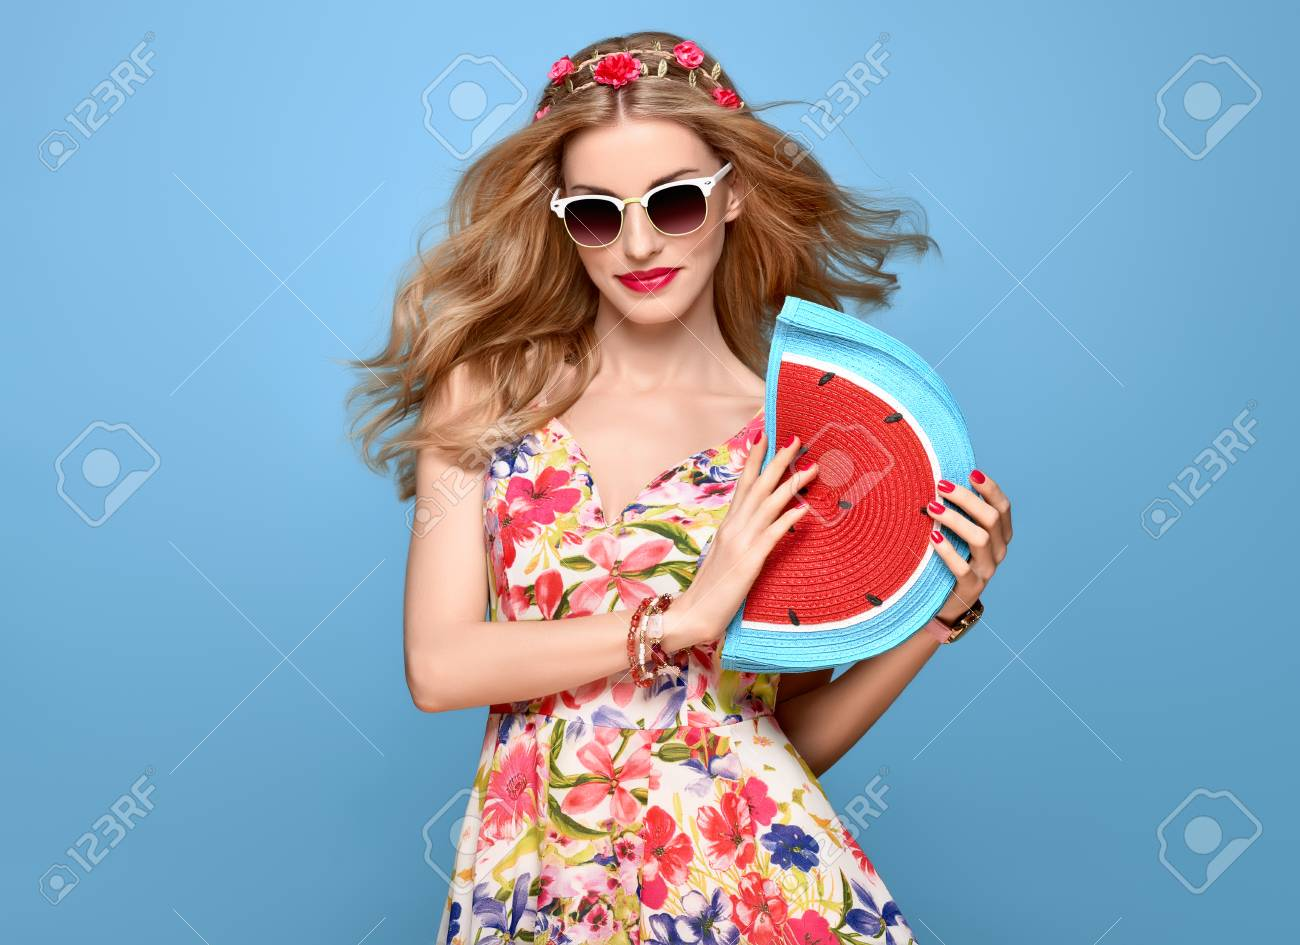 205e27aad Fashion Beauty woman in Summer Outfit. Sensual Sexy Blond Model in fashion  pose Smiling.